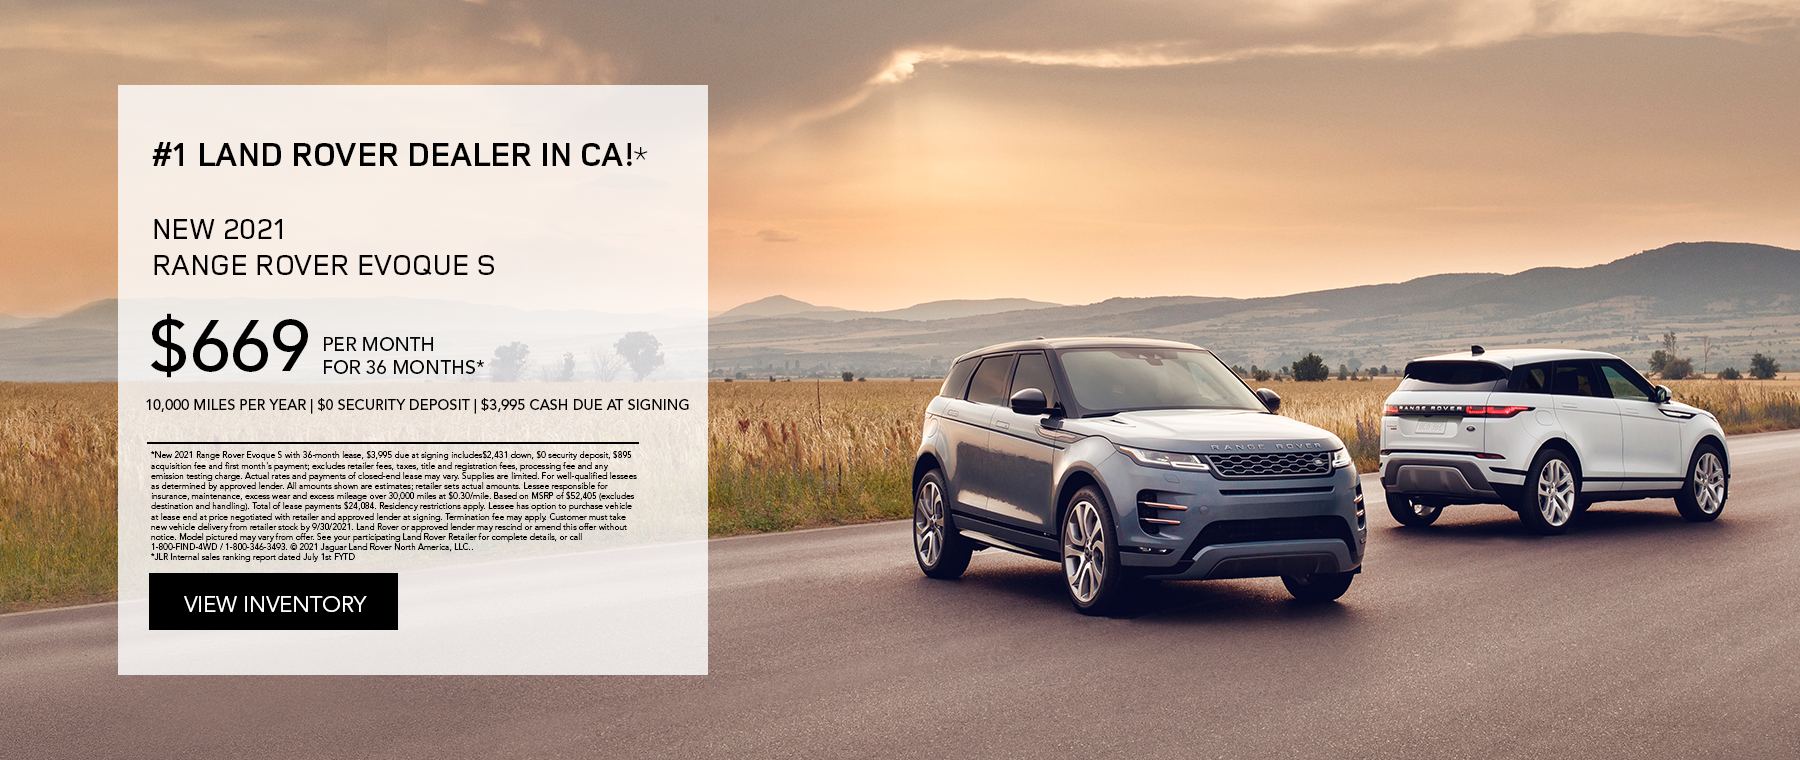 NEW 2021 RANGE ROVER EVOQUE S. $669 PER MONTH. 36 MONTH LEASE TERM. $3,995 CASH DUE AT SIGNING. $0 SECURITY DEPOSIT. 10,000 MILES PER YEAR. EXCLUDES RETAILER FEES, TAXES, TITLE AND REGISTRATION FEES, PROCESSING FEE AND ANY EMISSION TESTING CHARGE. OFFER ENDS 9/30/2021.